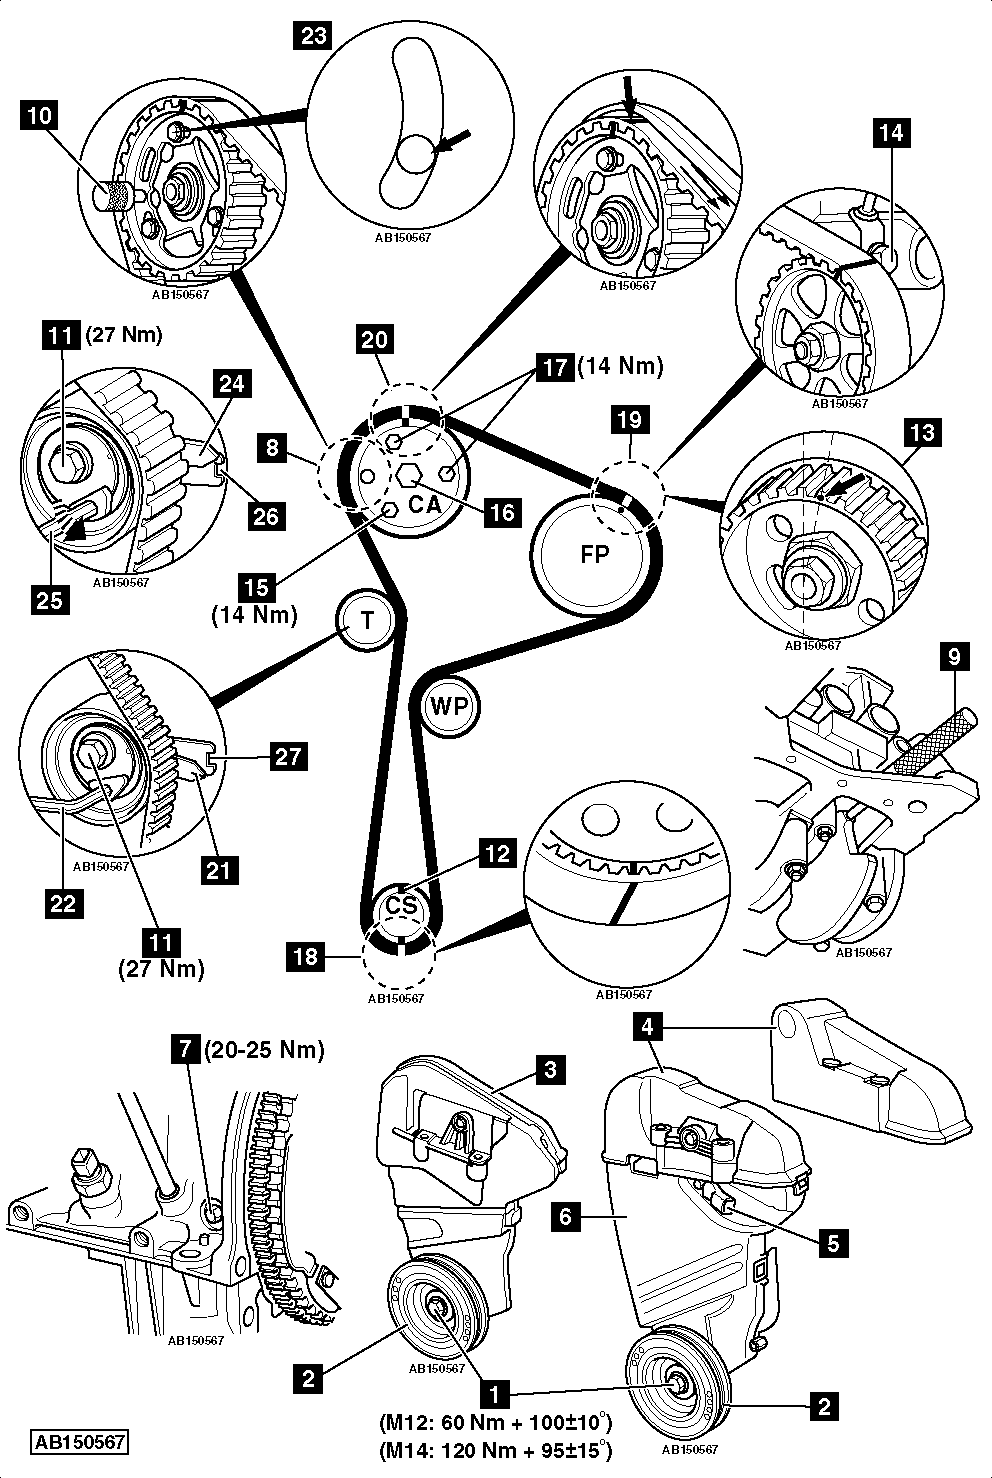 Wiring Diagram Renault Clio 3 Auto Electrical 2005 Jeep Liberty 7 Engine How To Replace Timing Belt On 1 5 Dci